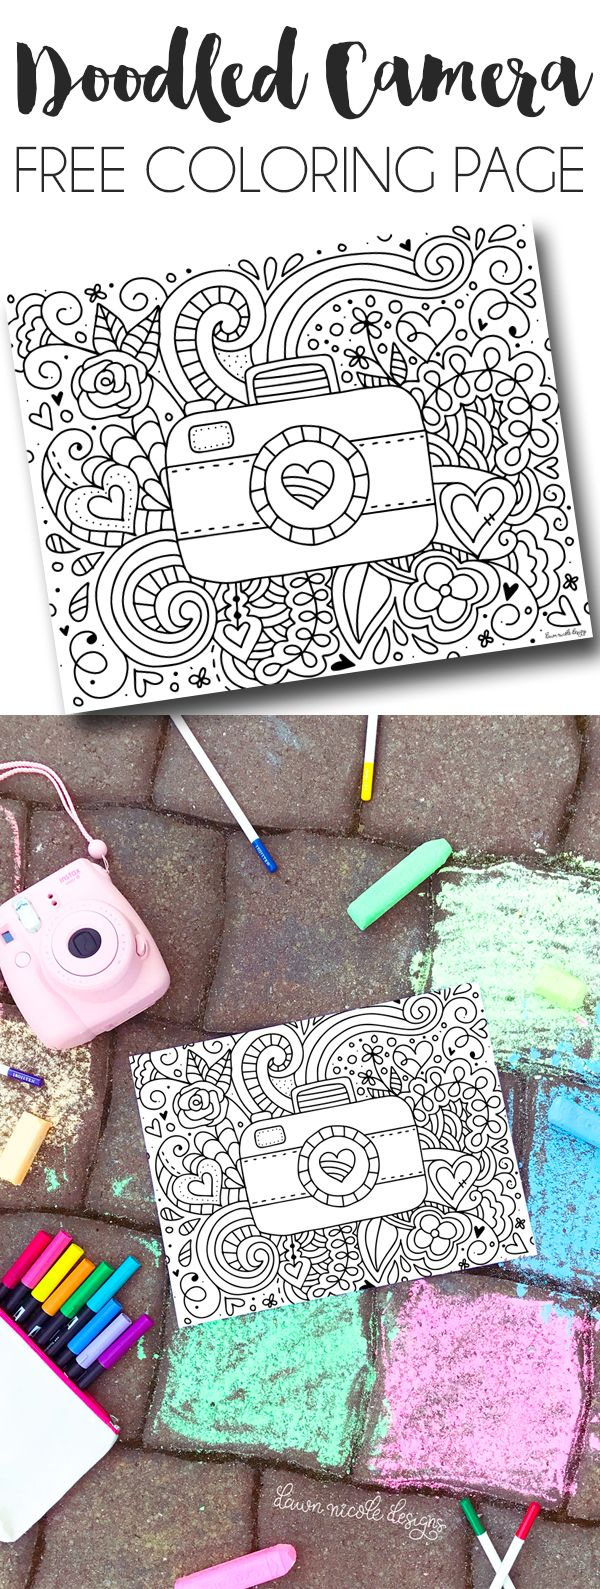 Free printable coloring in pages - 25 Unique Free Printable Coloring Pages Ideas On Pinterest Kids Coloring Pages Coloring Sheets For Kids And Printable Coloring